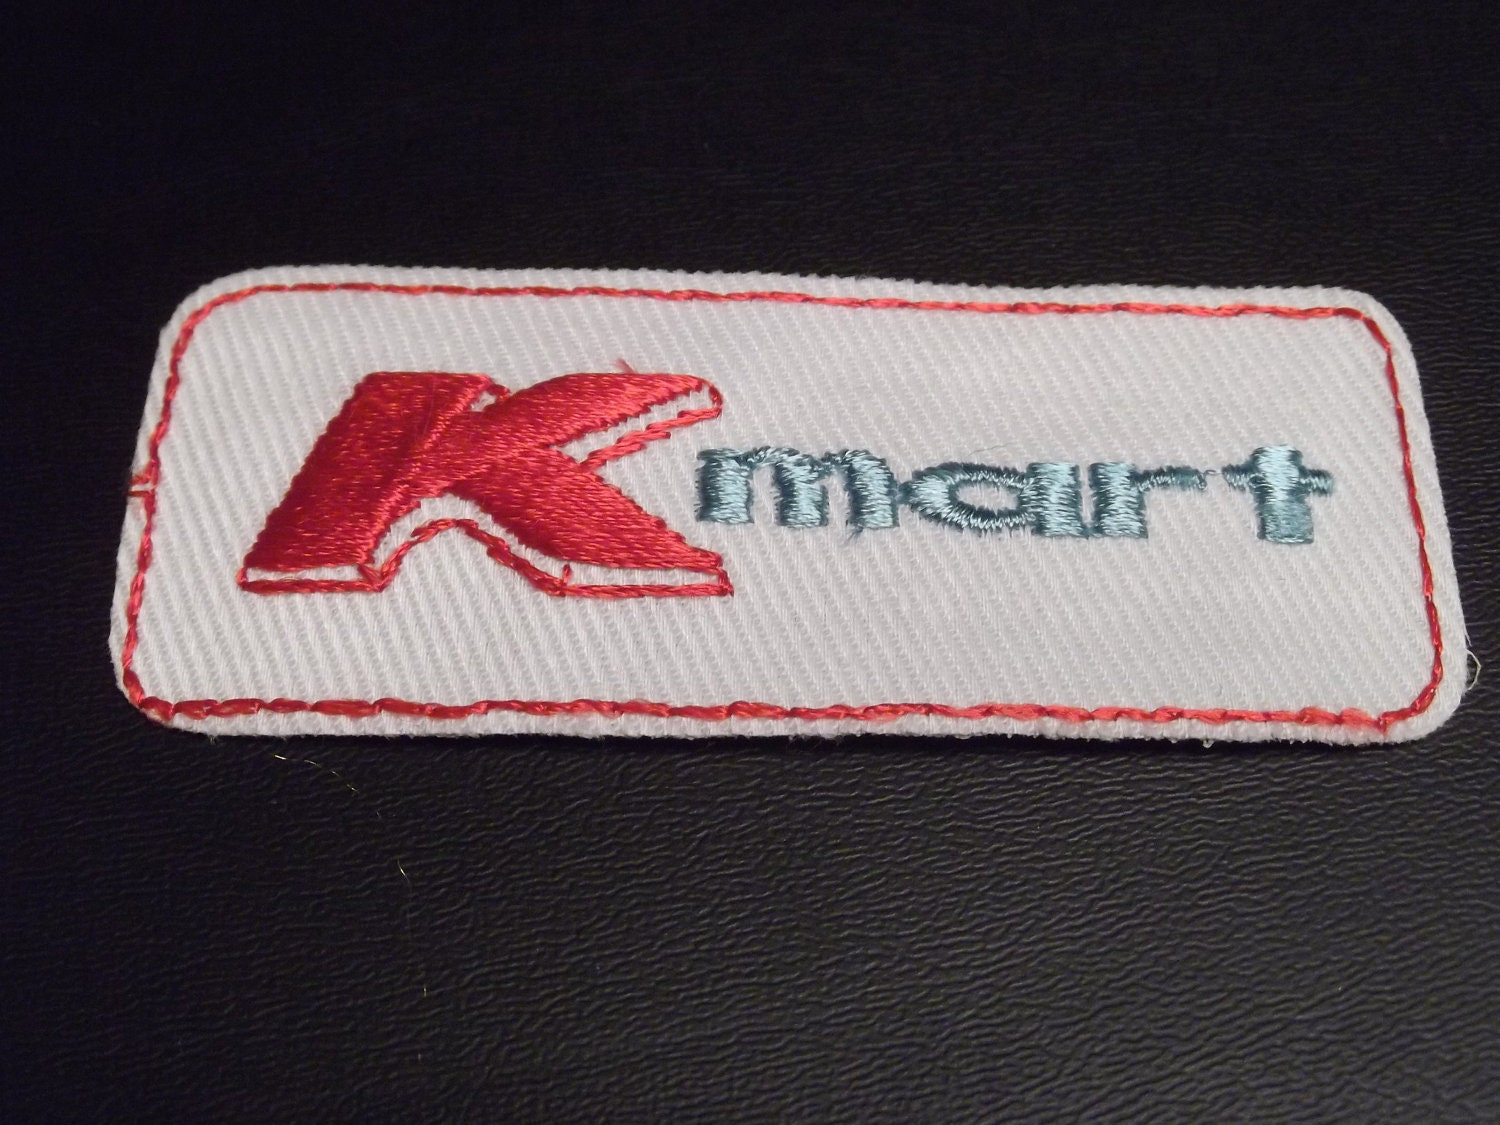 Vintage kmart logo patch employee uniform 1970s 1980s by for Kmart shirts for employees